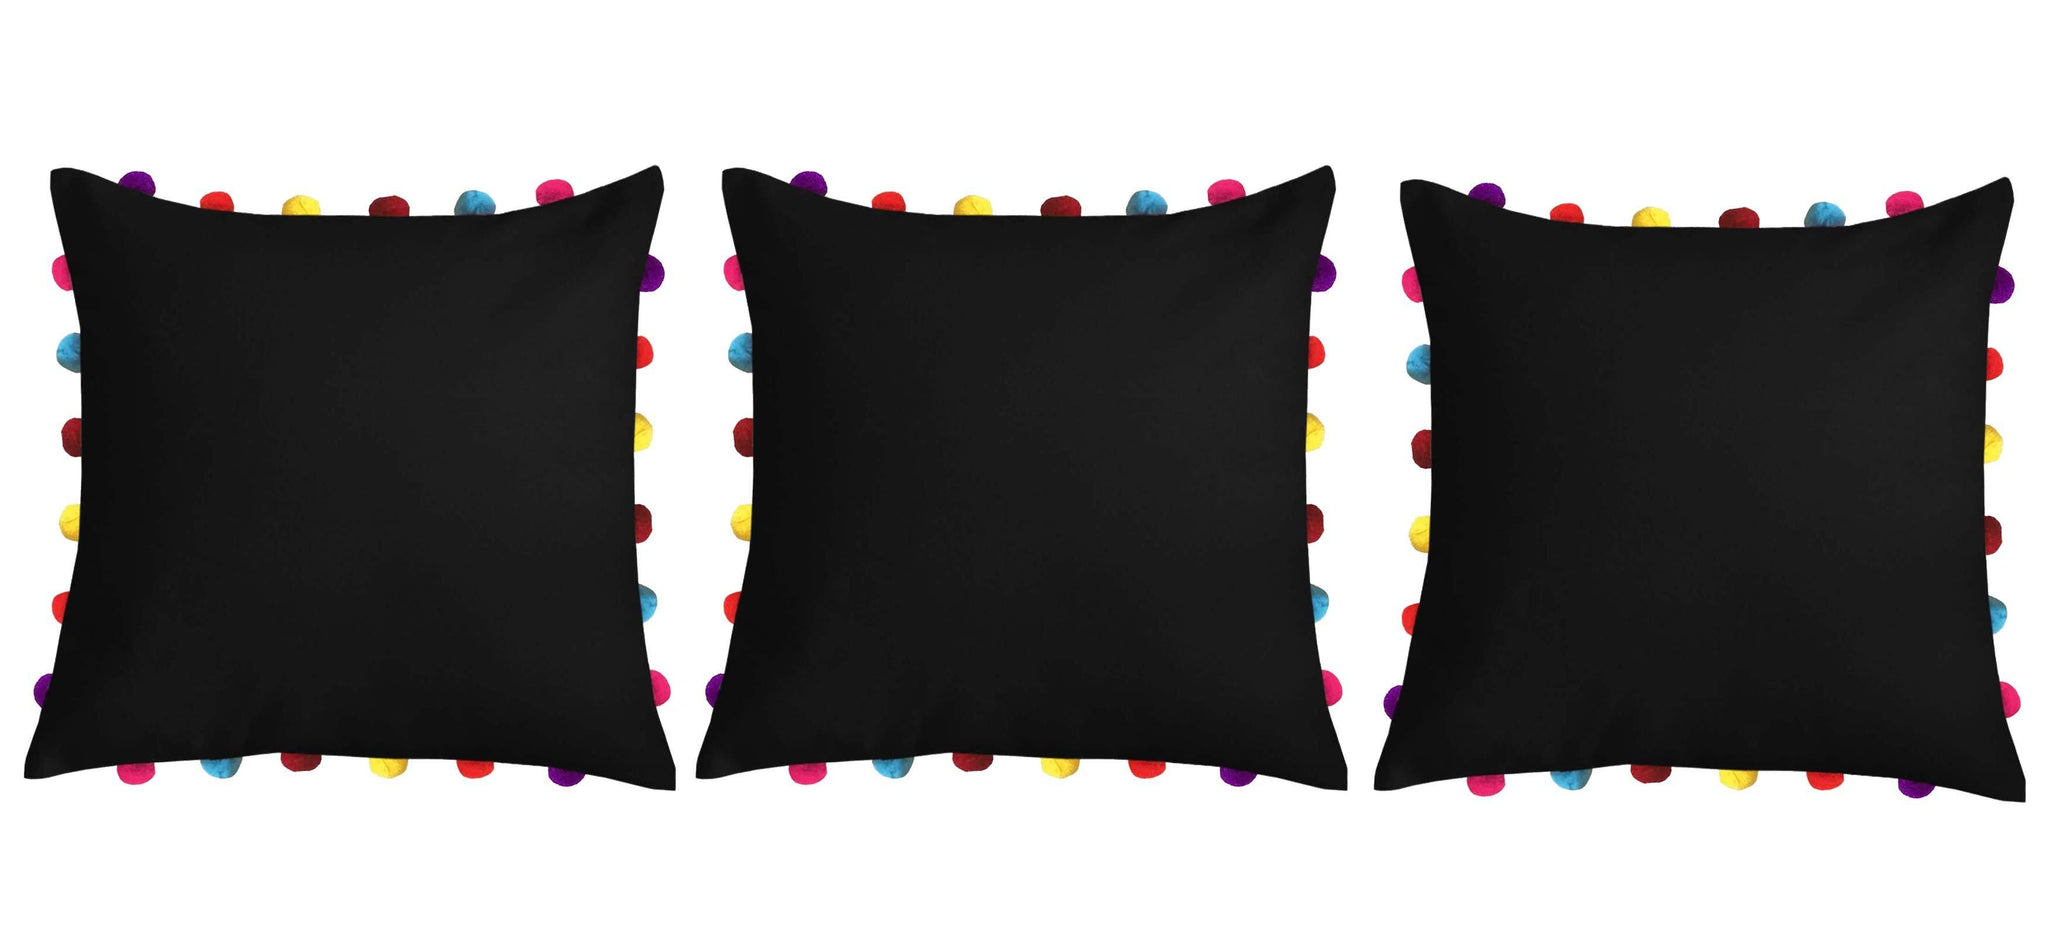 "Lushomes Pirate Black Cushion Cover with Colorful Pom pom (3 pcs, 18 x 18"") - Lushomes"